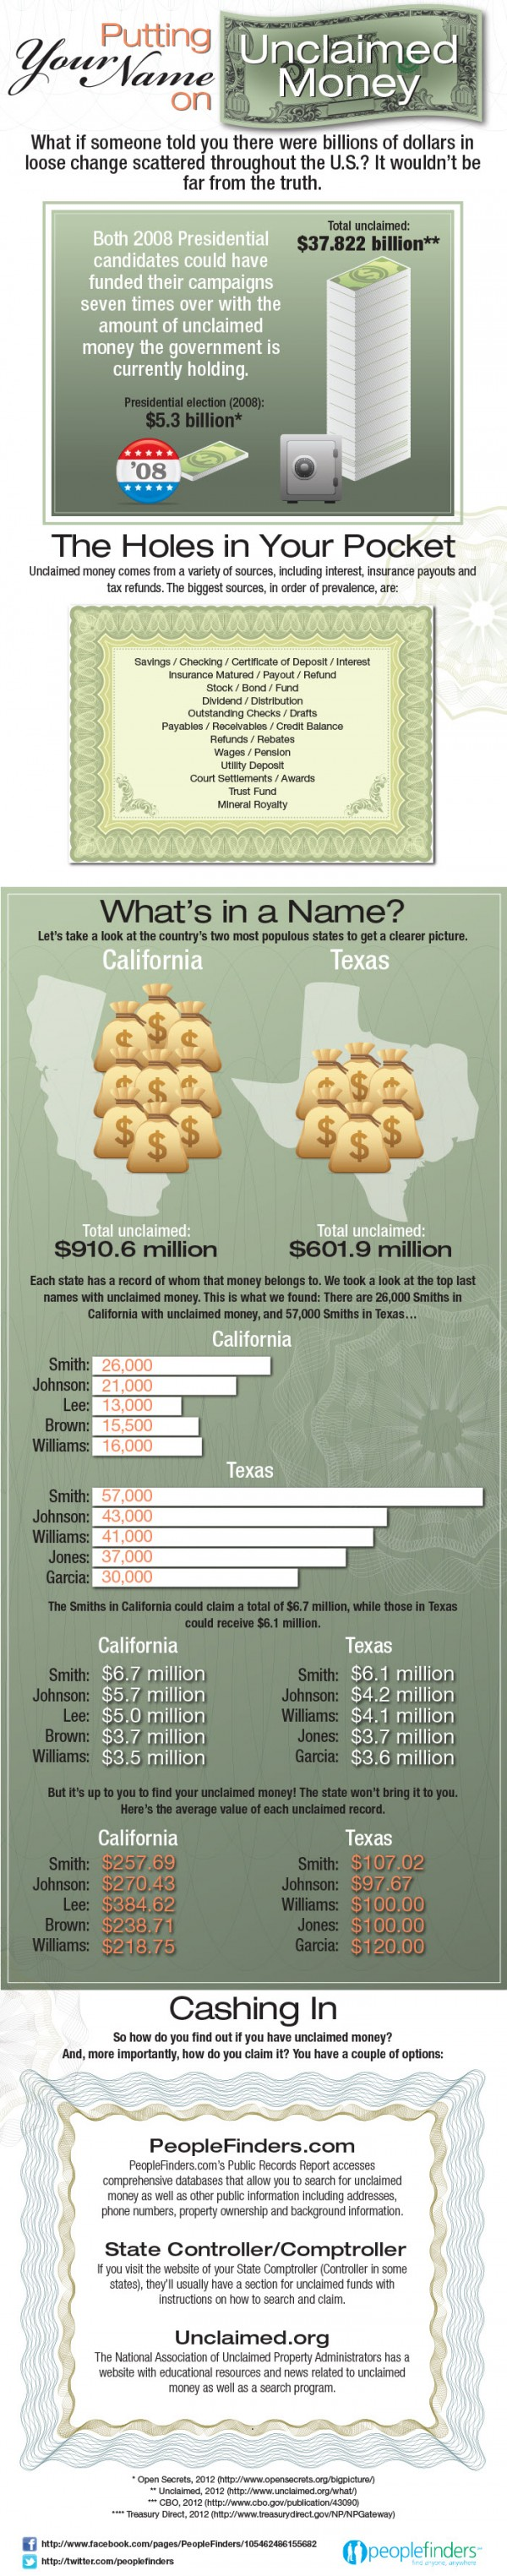 unclaimed-money-graphic